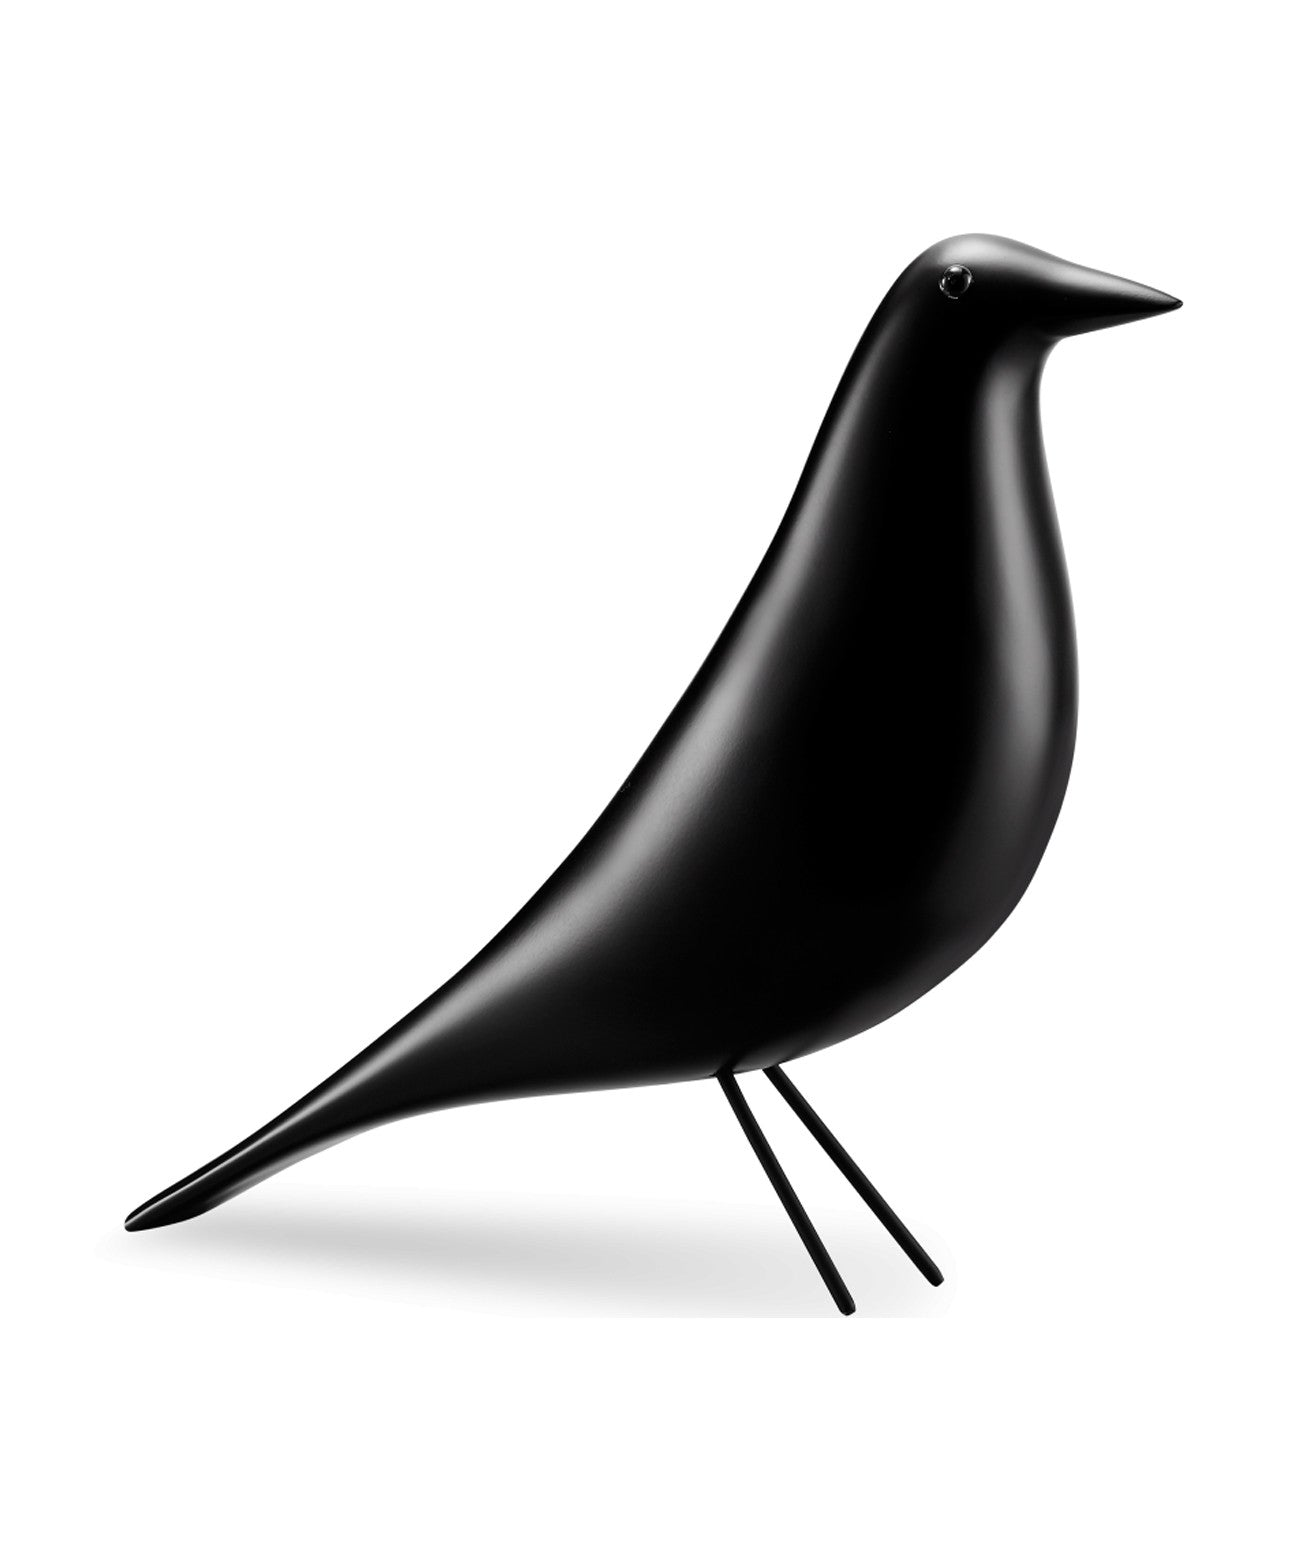 chares eames house bird. Black Bedroom Furniture Sets. Home Design Ideas